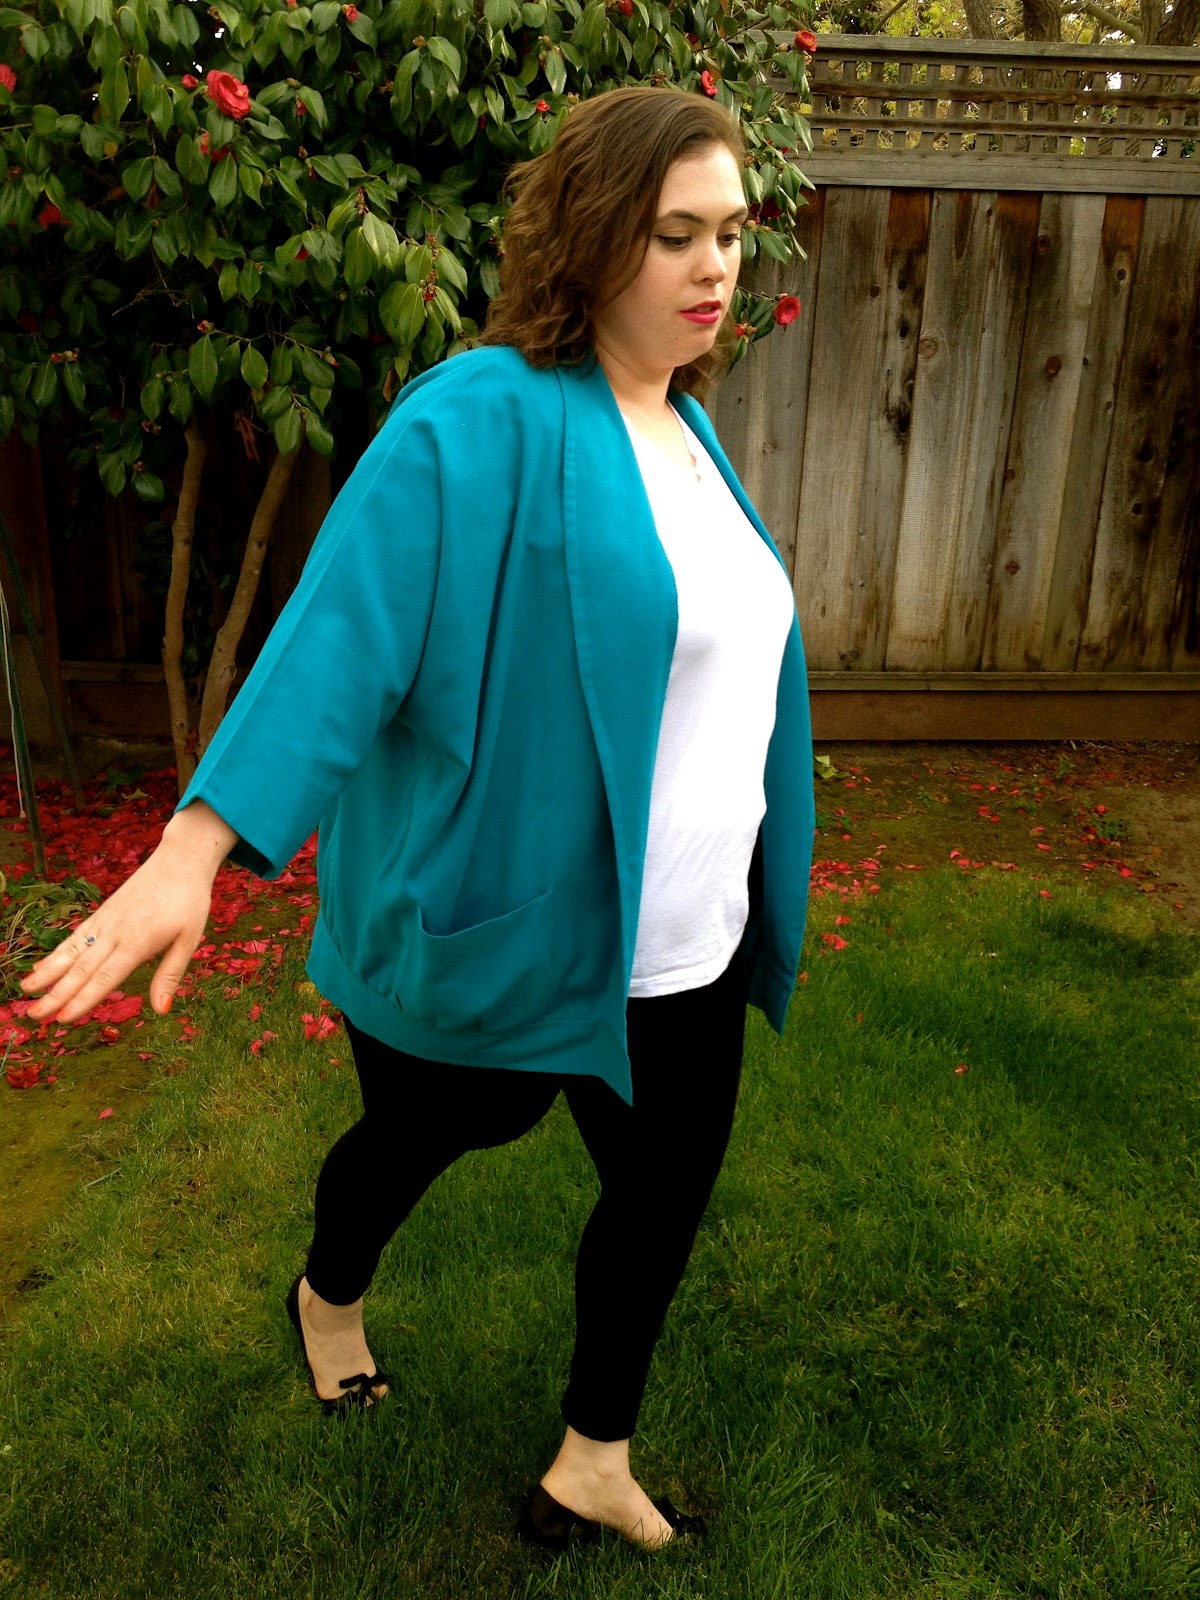 a96e73561e4 The Curvy Elle  How to Wear Leggings for Plus Size (or ANY Size)